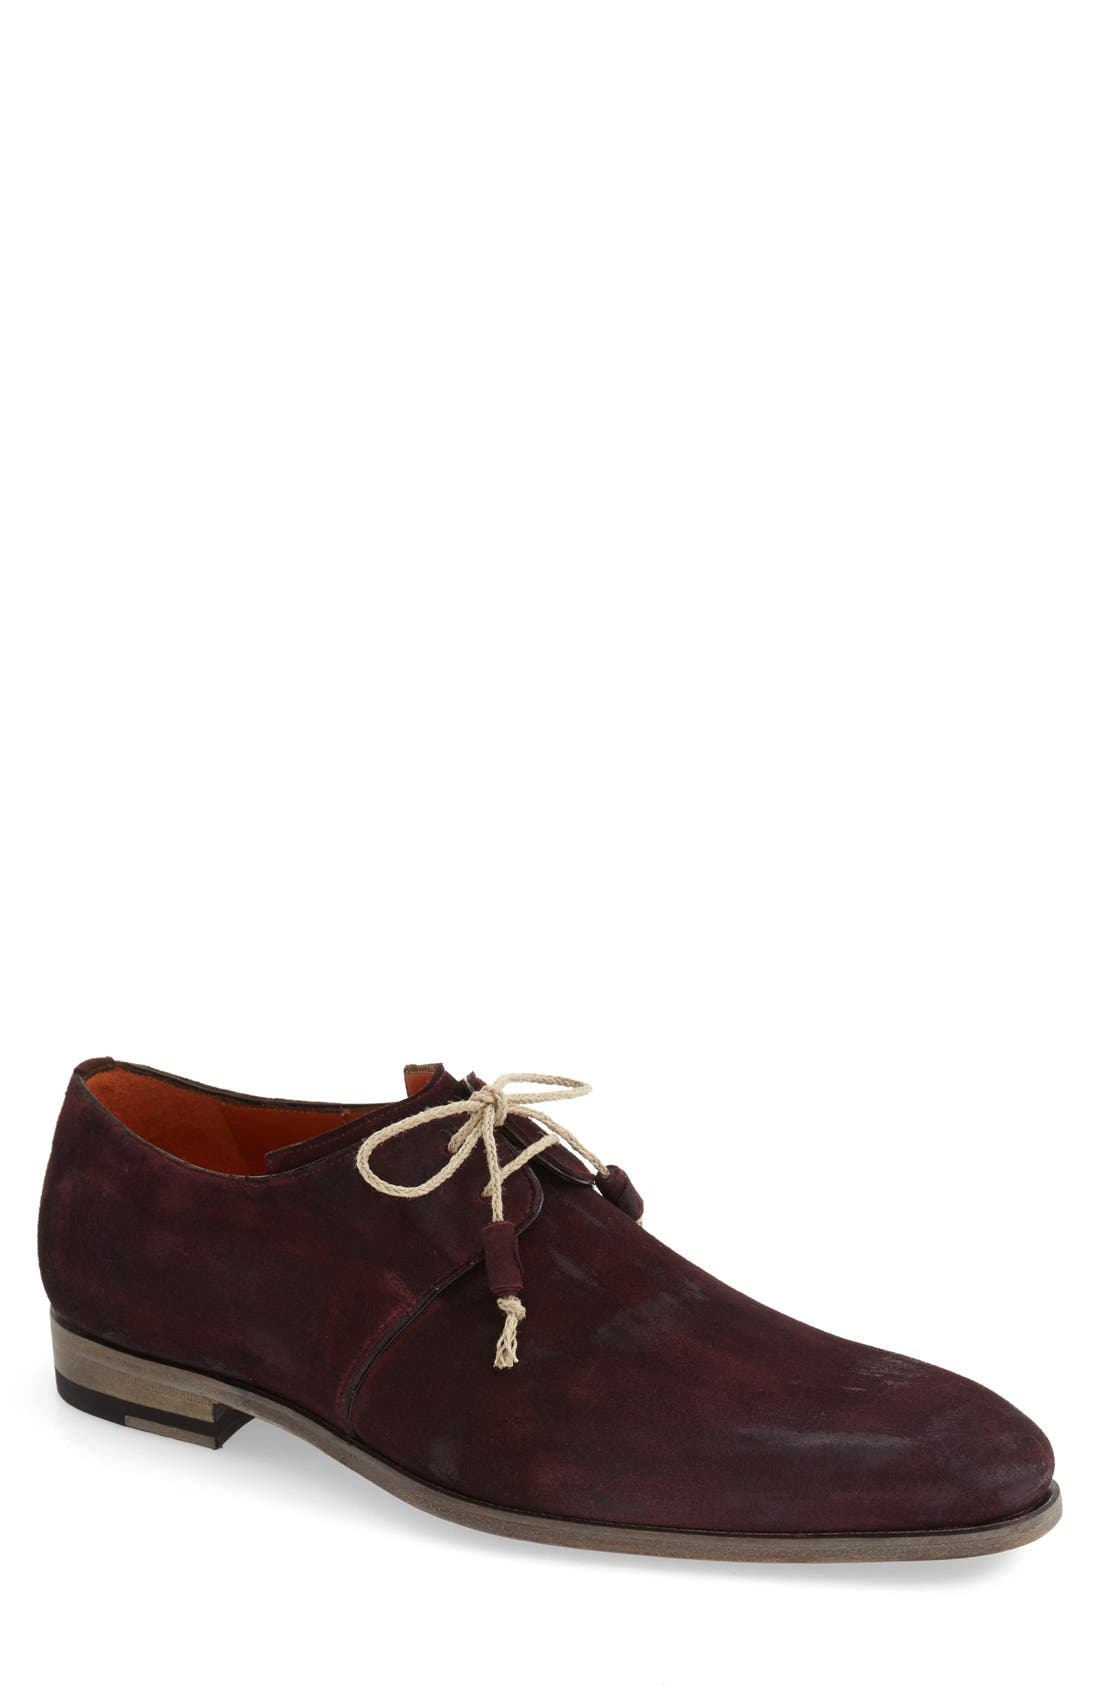 Main Image - Mezlan 'Fenis' Plain Toe Derby (Men)